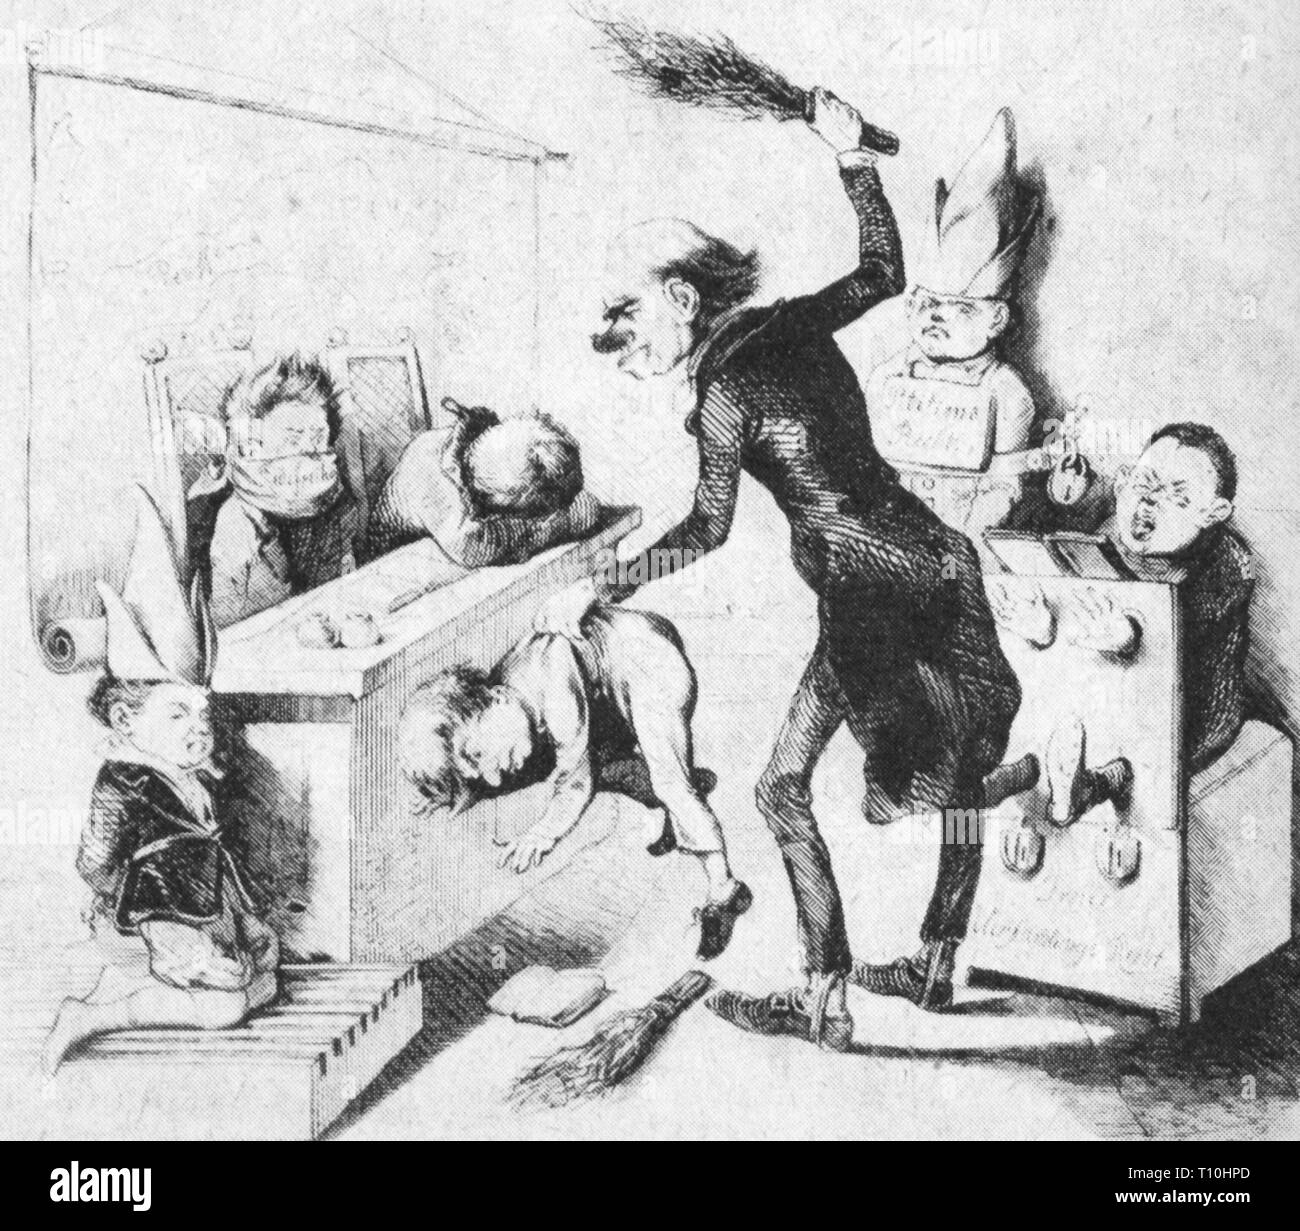 events, revolutions 1848 - 1849, Germany, 'Die unartigen Kinder' (The Naughty Children), drawing, 1849, Artist's Copyright has not to be cleared - Stock Image